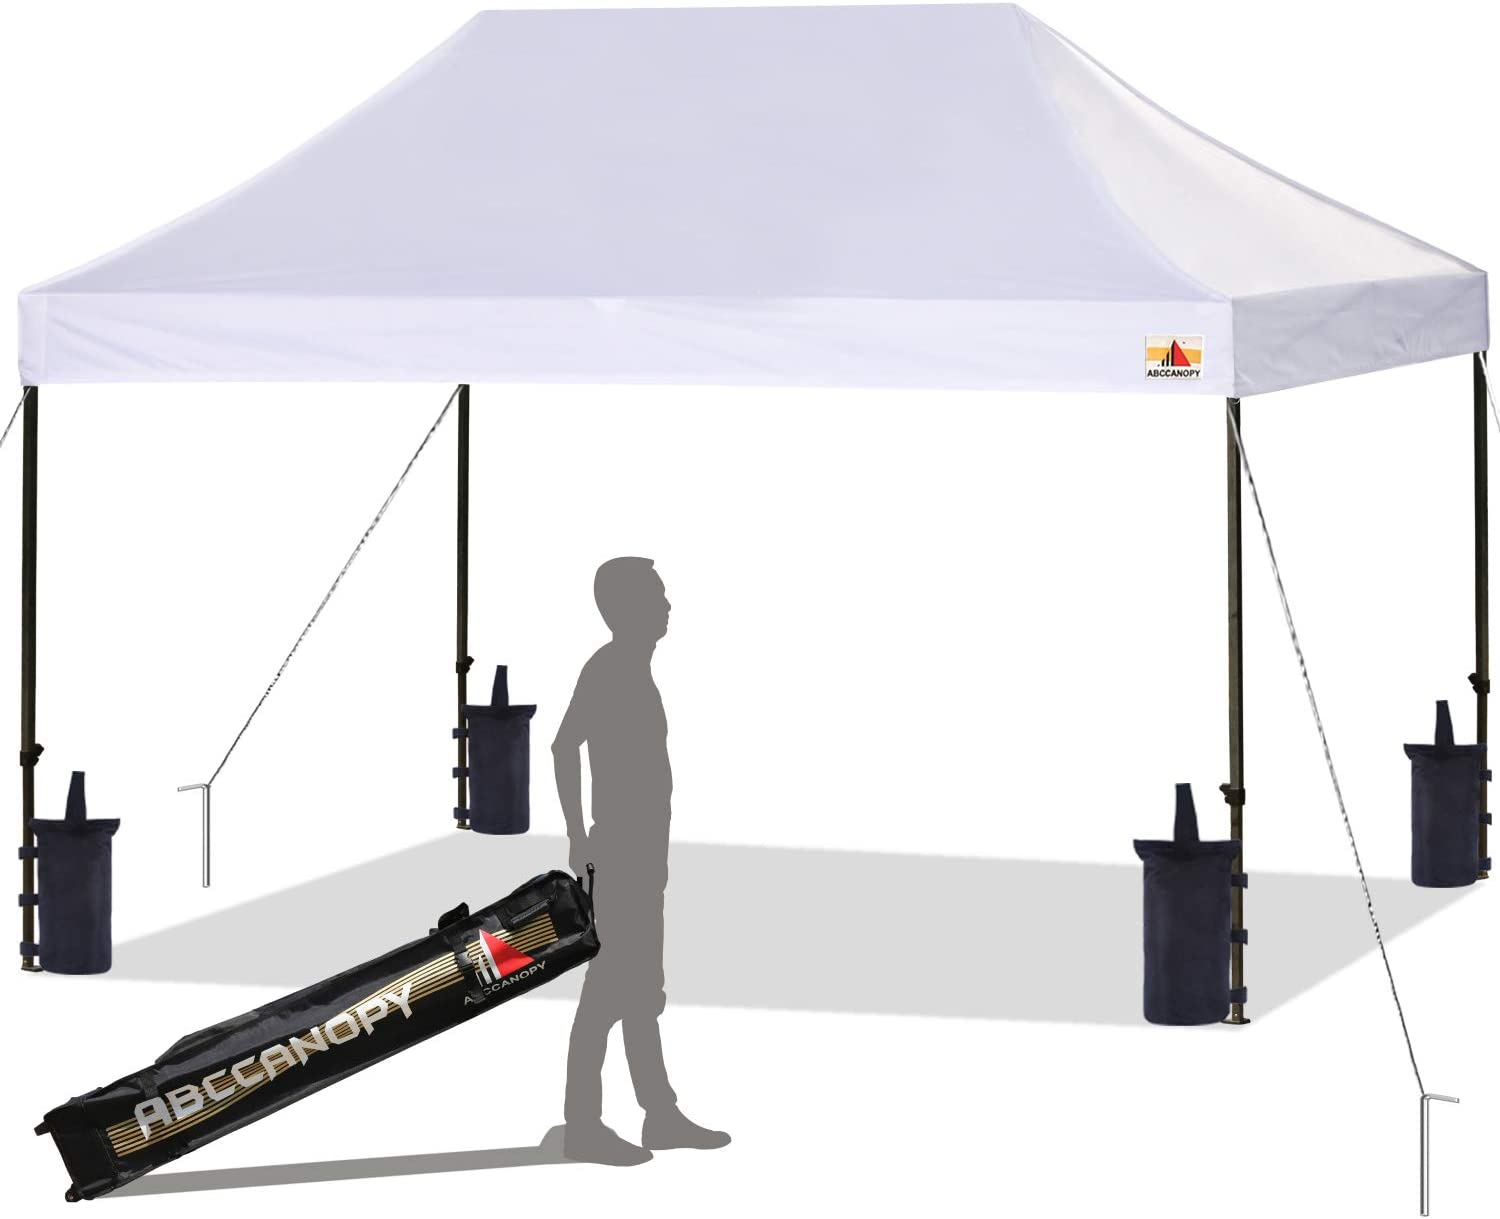 ABCCANOPY Pop up Canopy Tent Commercial Instant Shelter with Wheeled Carry Bag, Bonus 4 Canopy Sand Bags, 10x15 FT (White) 61OGLjVlo2L